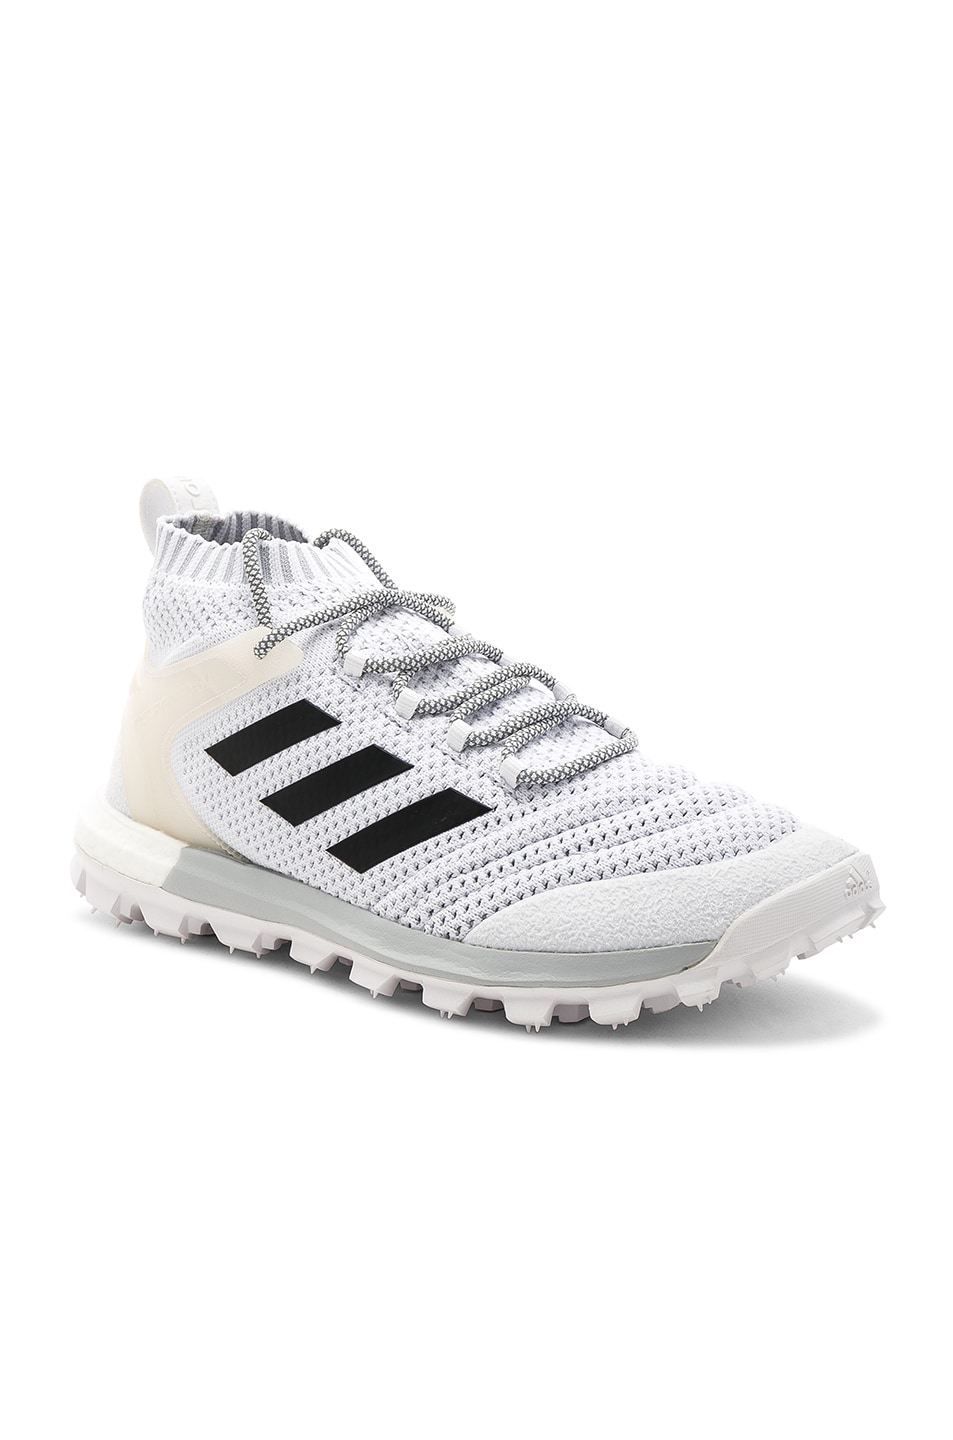 sports shoes a987a fc858 Image 1 of Gosha Rubchinskiy x Adidas Copa PK Mid Sneakers in White